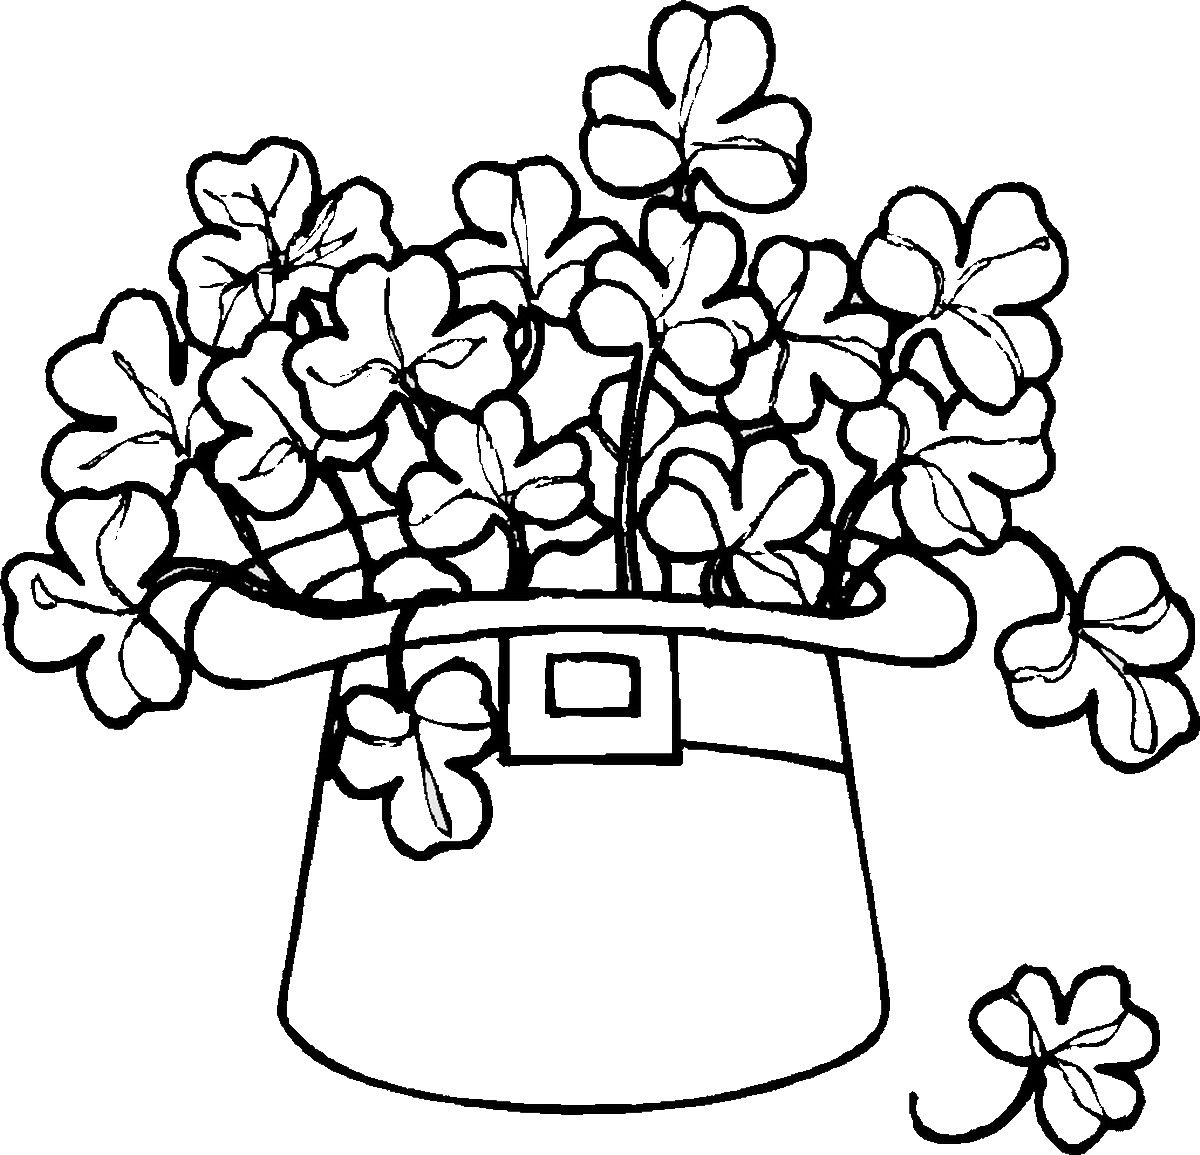 St Patrick\'s Day Coloring Pages for childrens printable for free ...